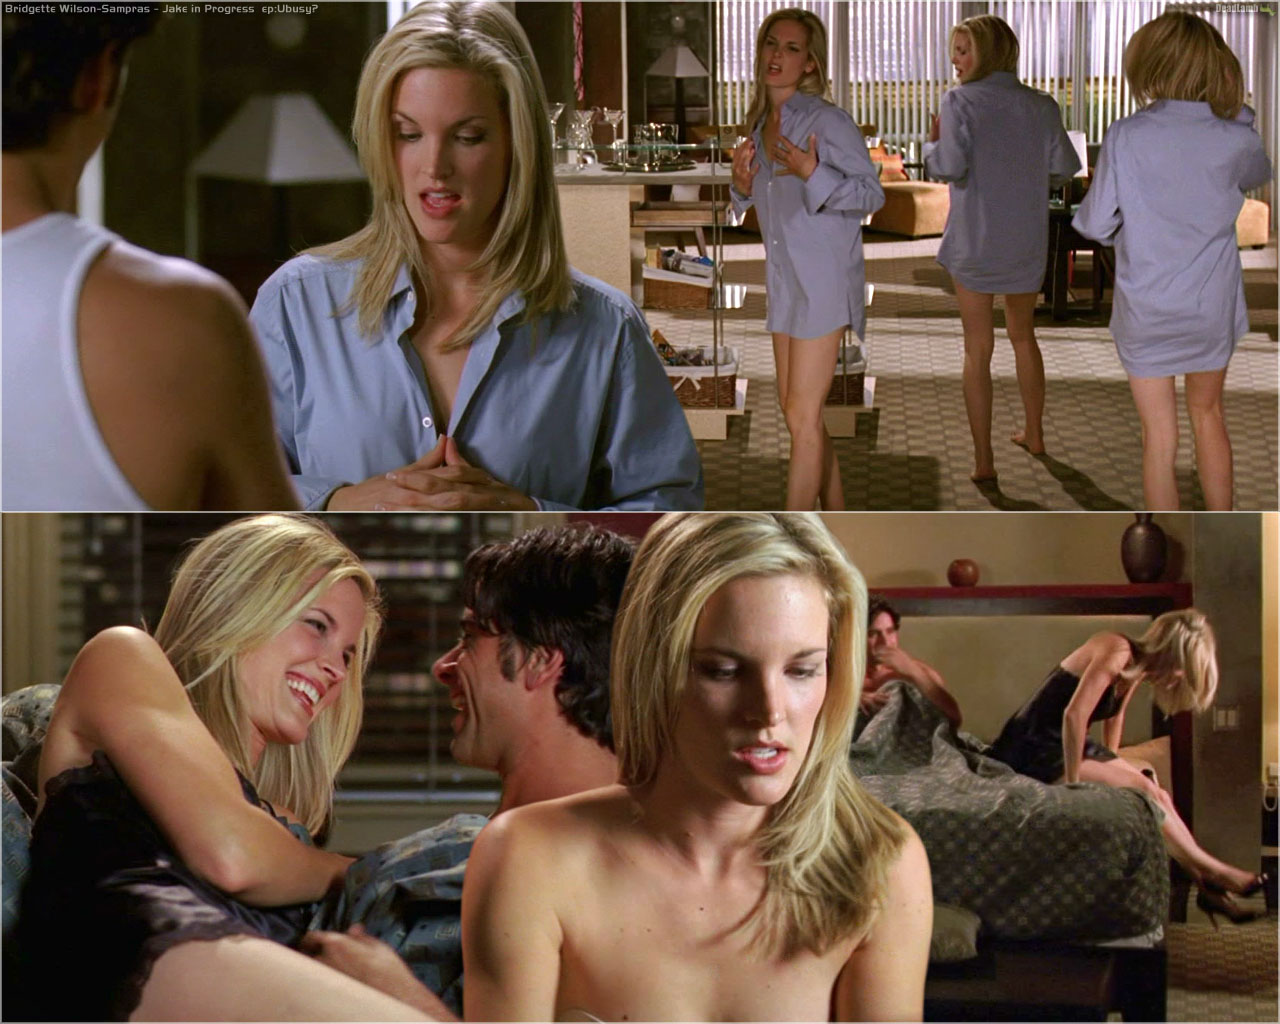 Naked Bridgette Wilson In Jake In Progress 1 2